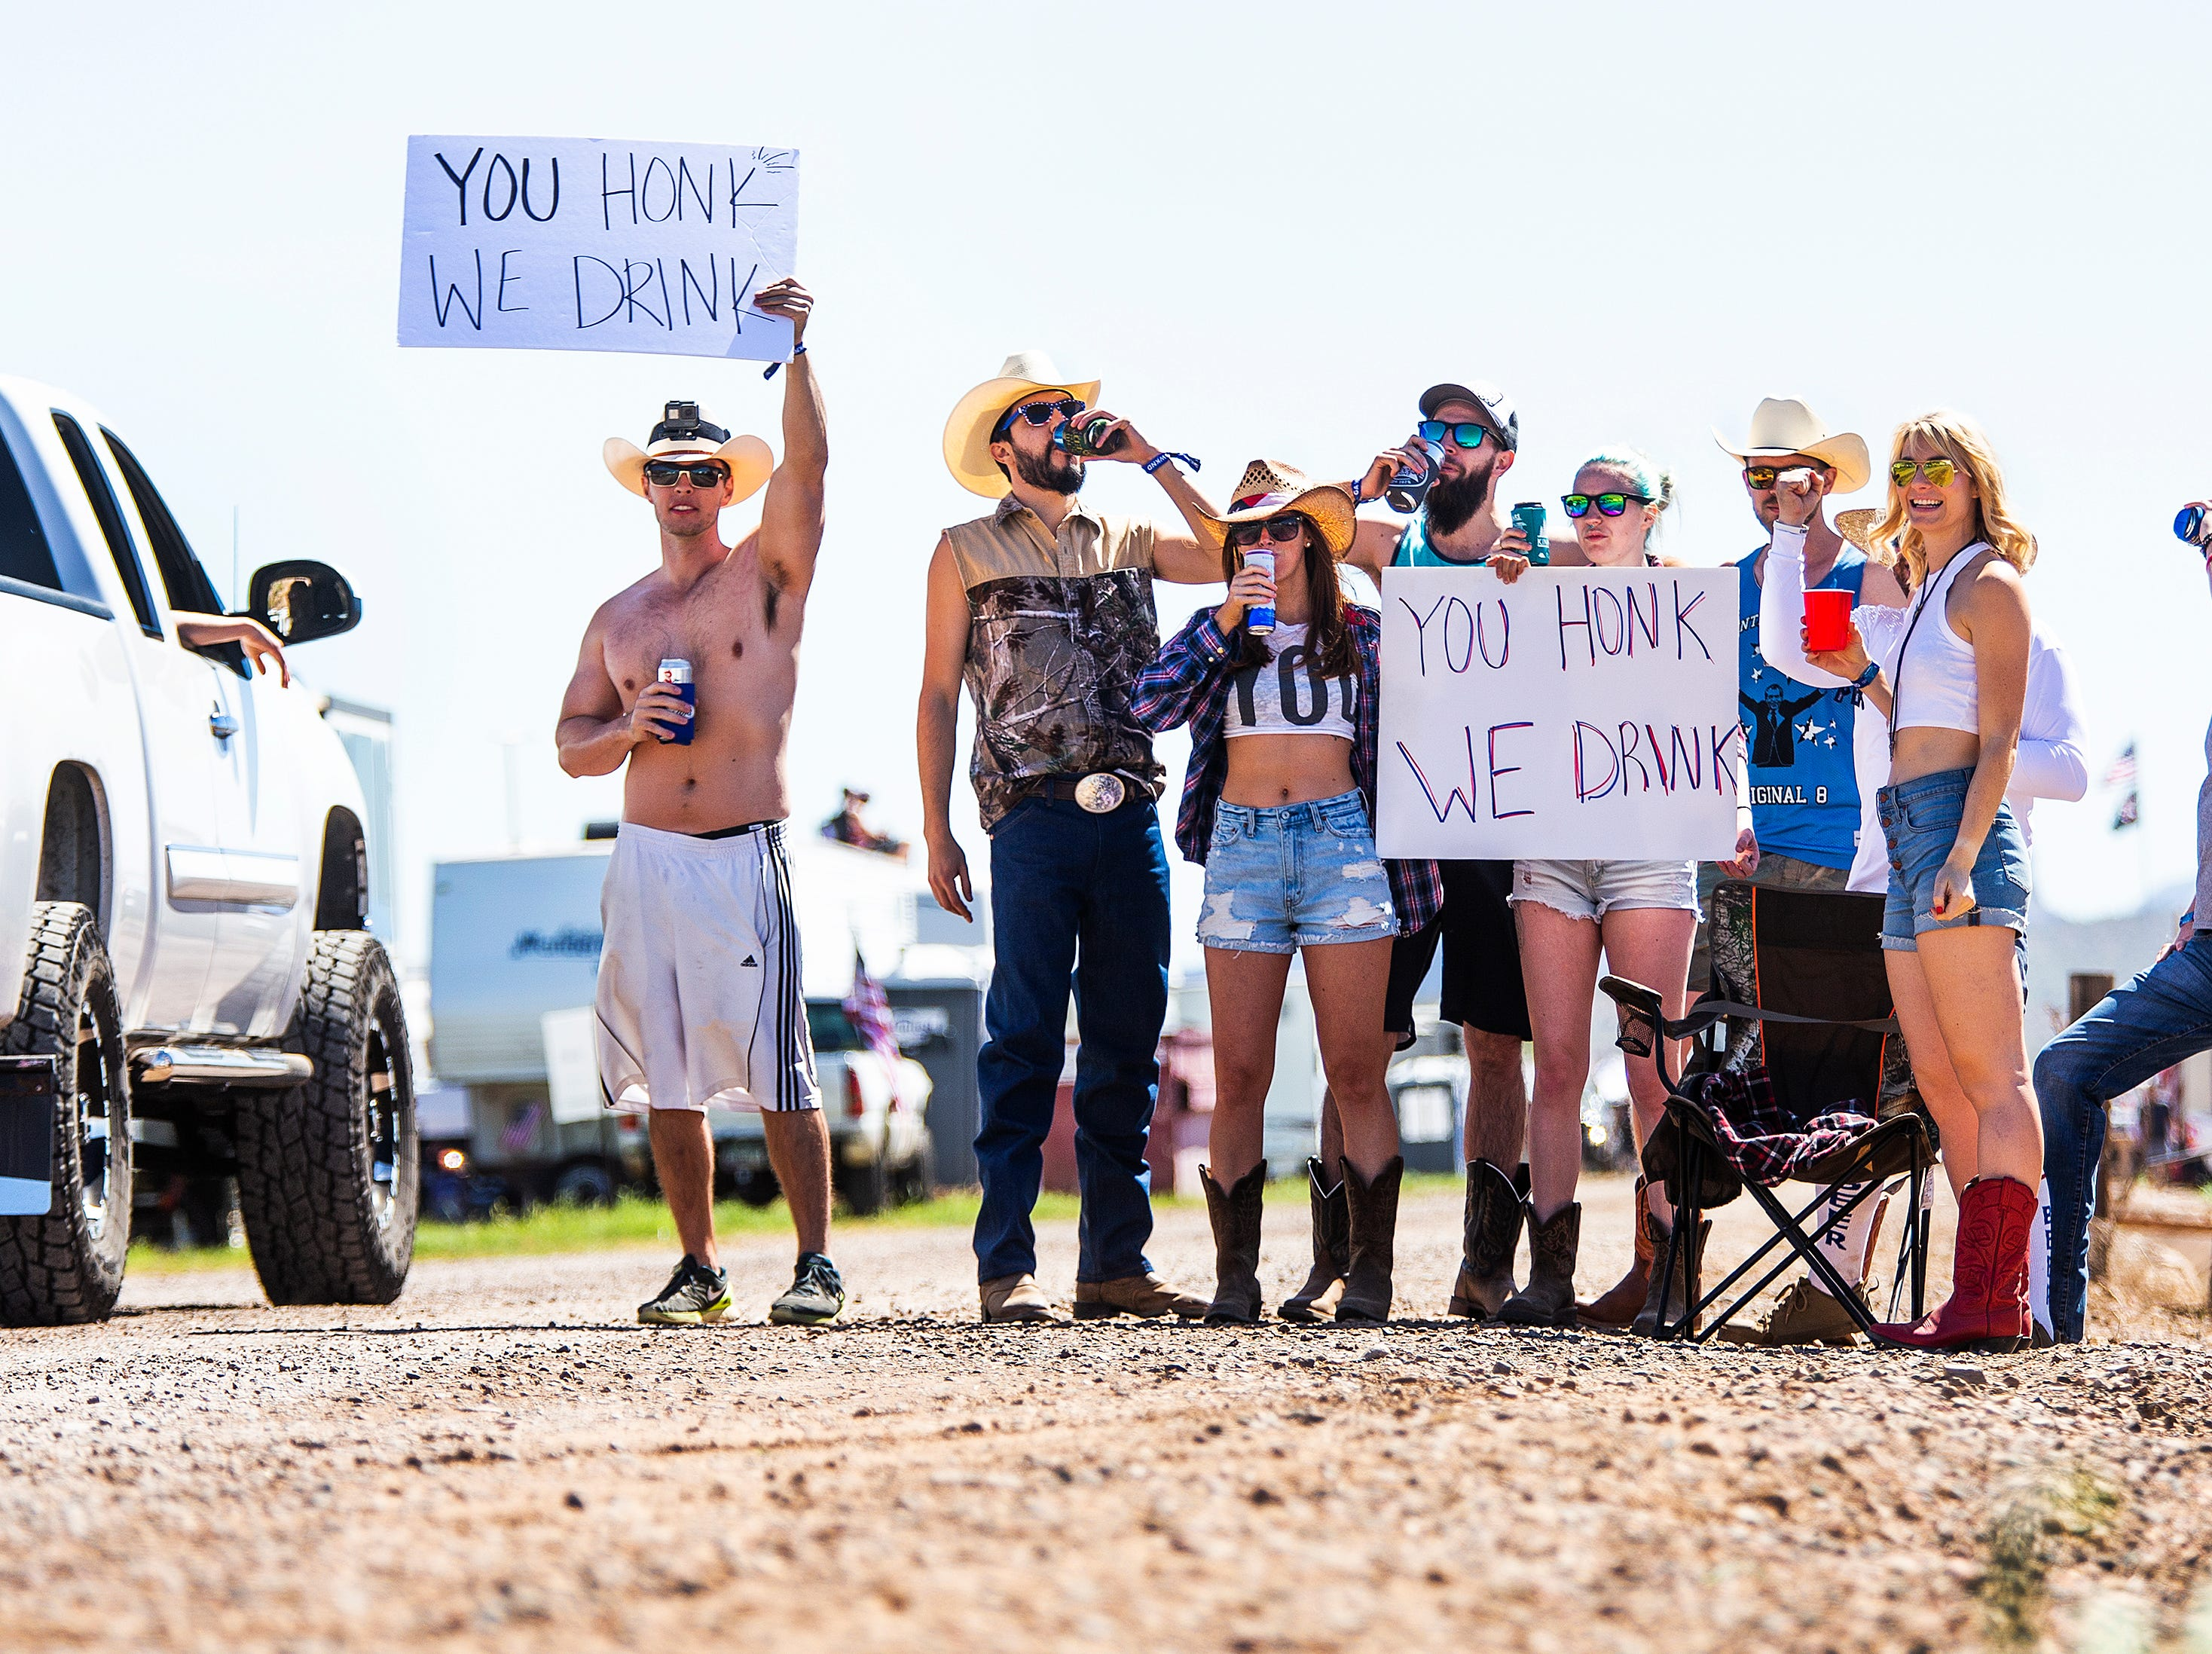 Early morning risers get the party started by getting people to honk as they enter the Country Thunder Arizona 2019 music festival April 11, 2019.